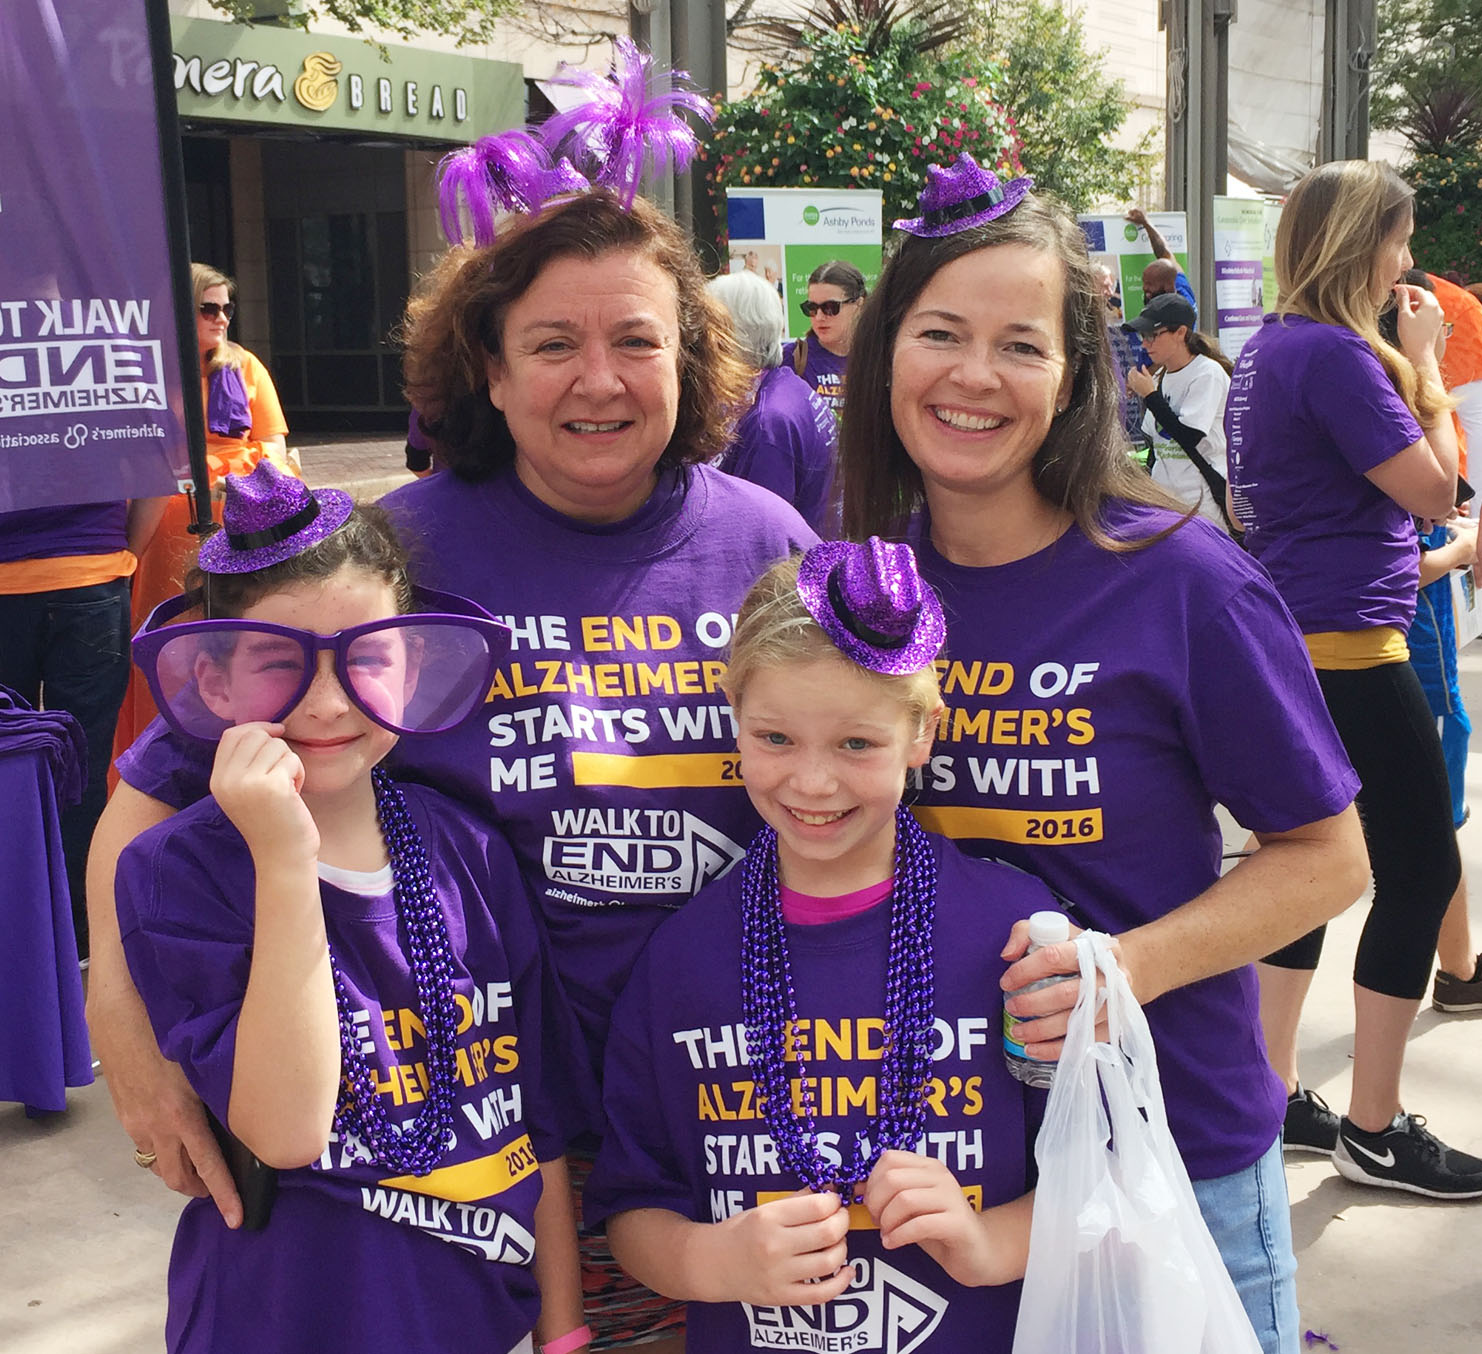 walk-to-end-alzheimers-reston-town-center-03